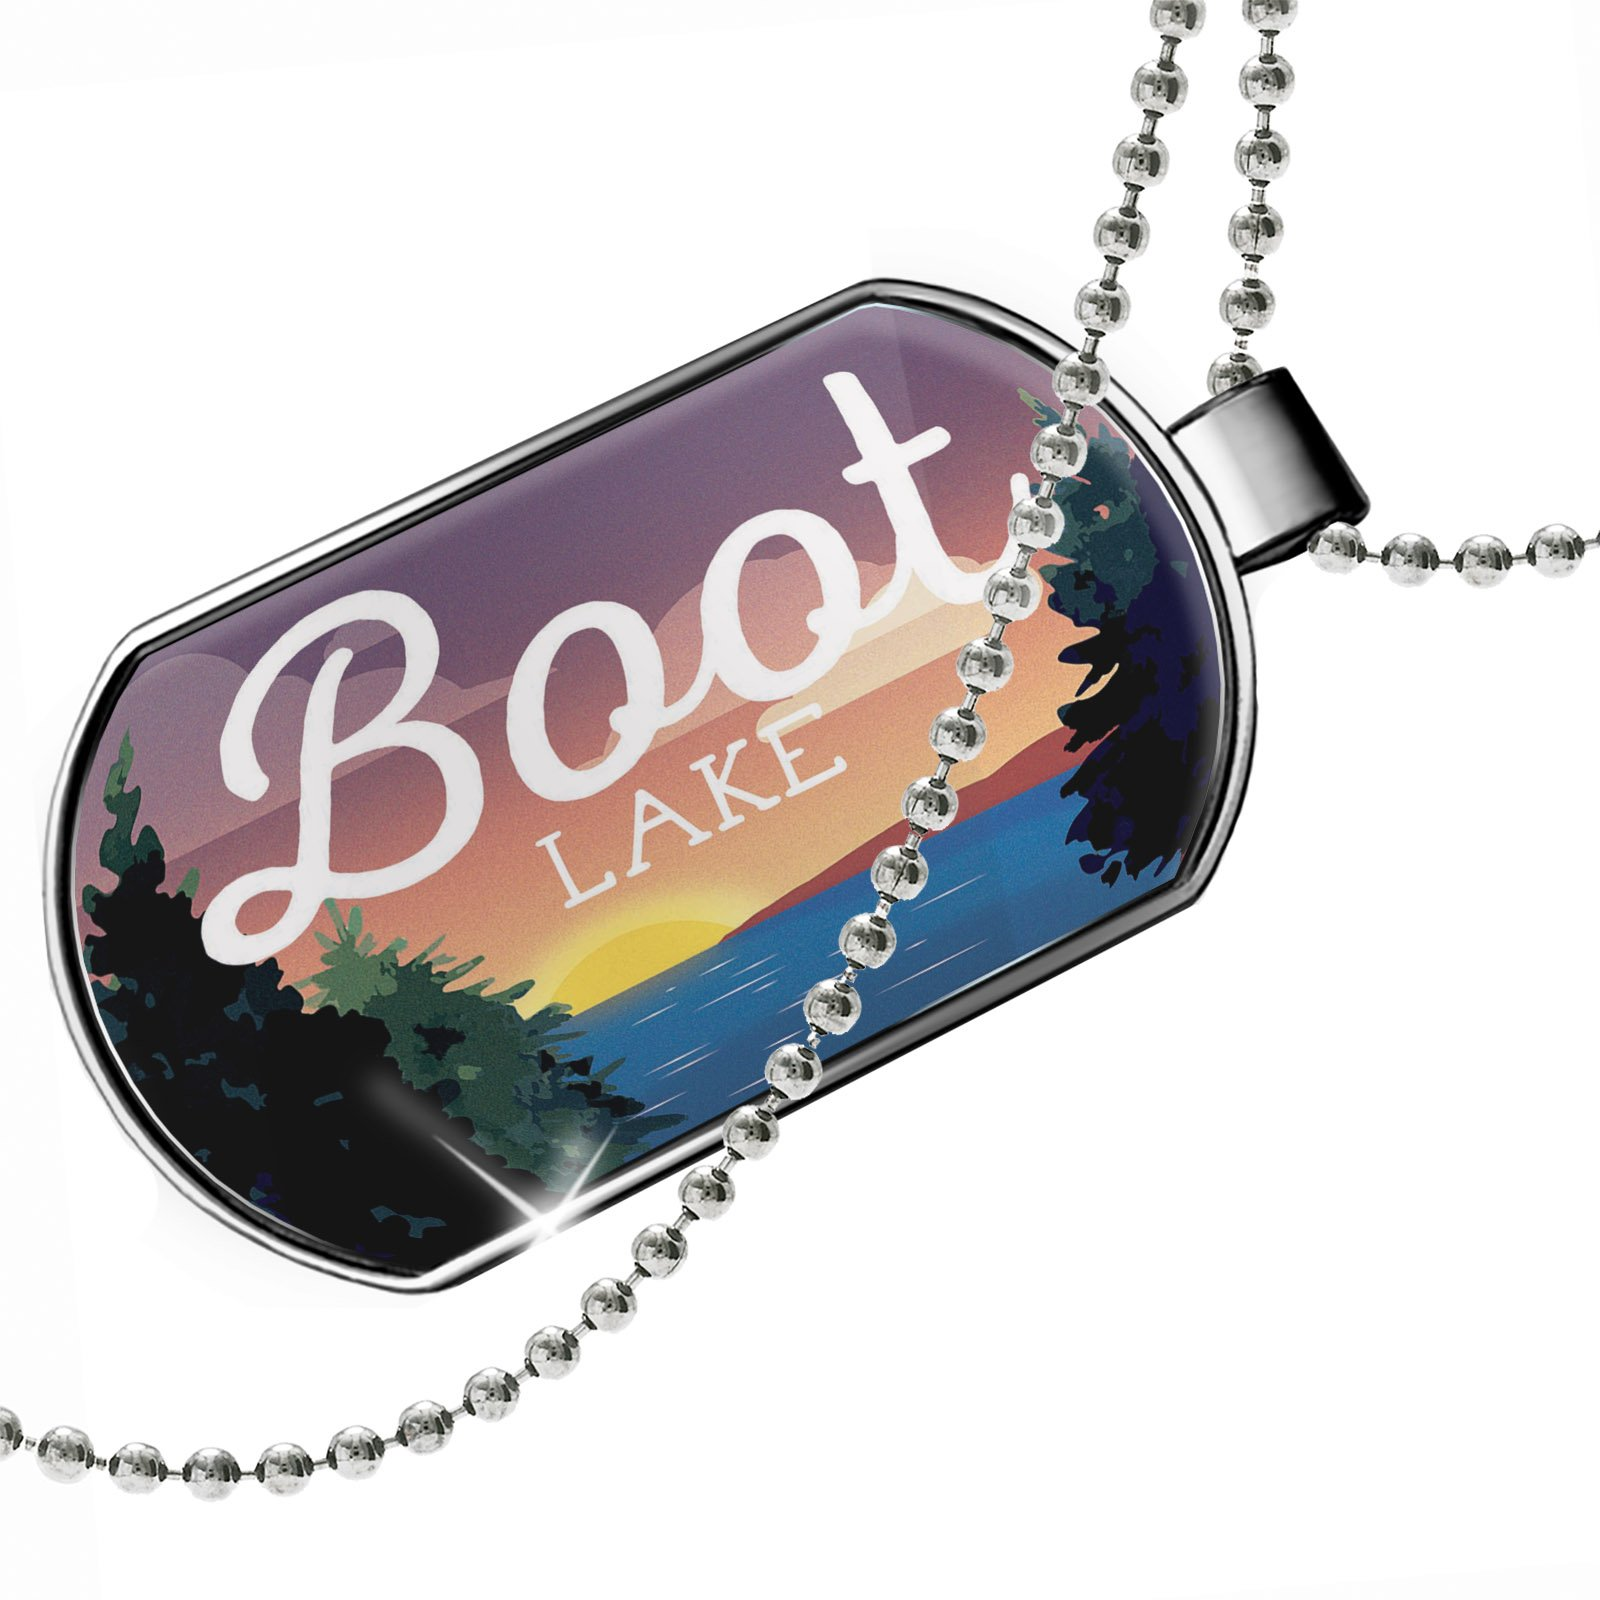 Dogtag Lake retro design Boot Lake Dog tags necklace - Neonblond